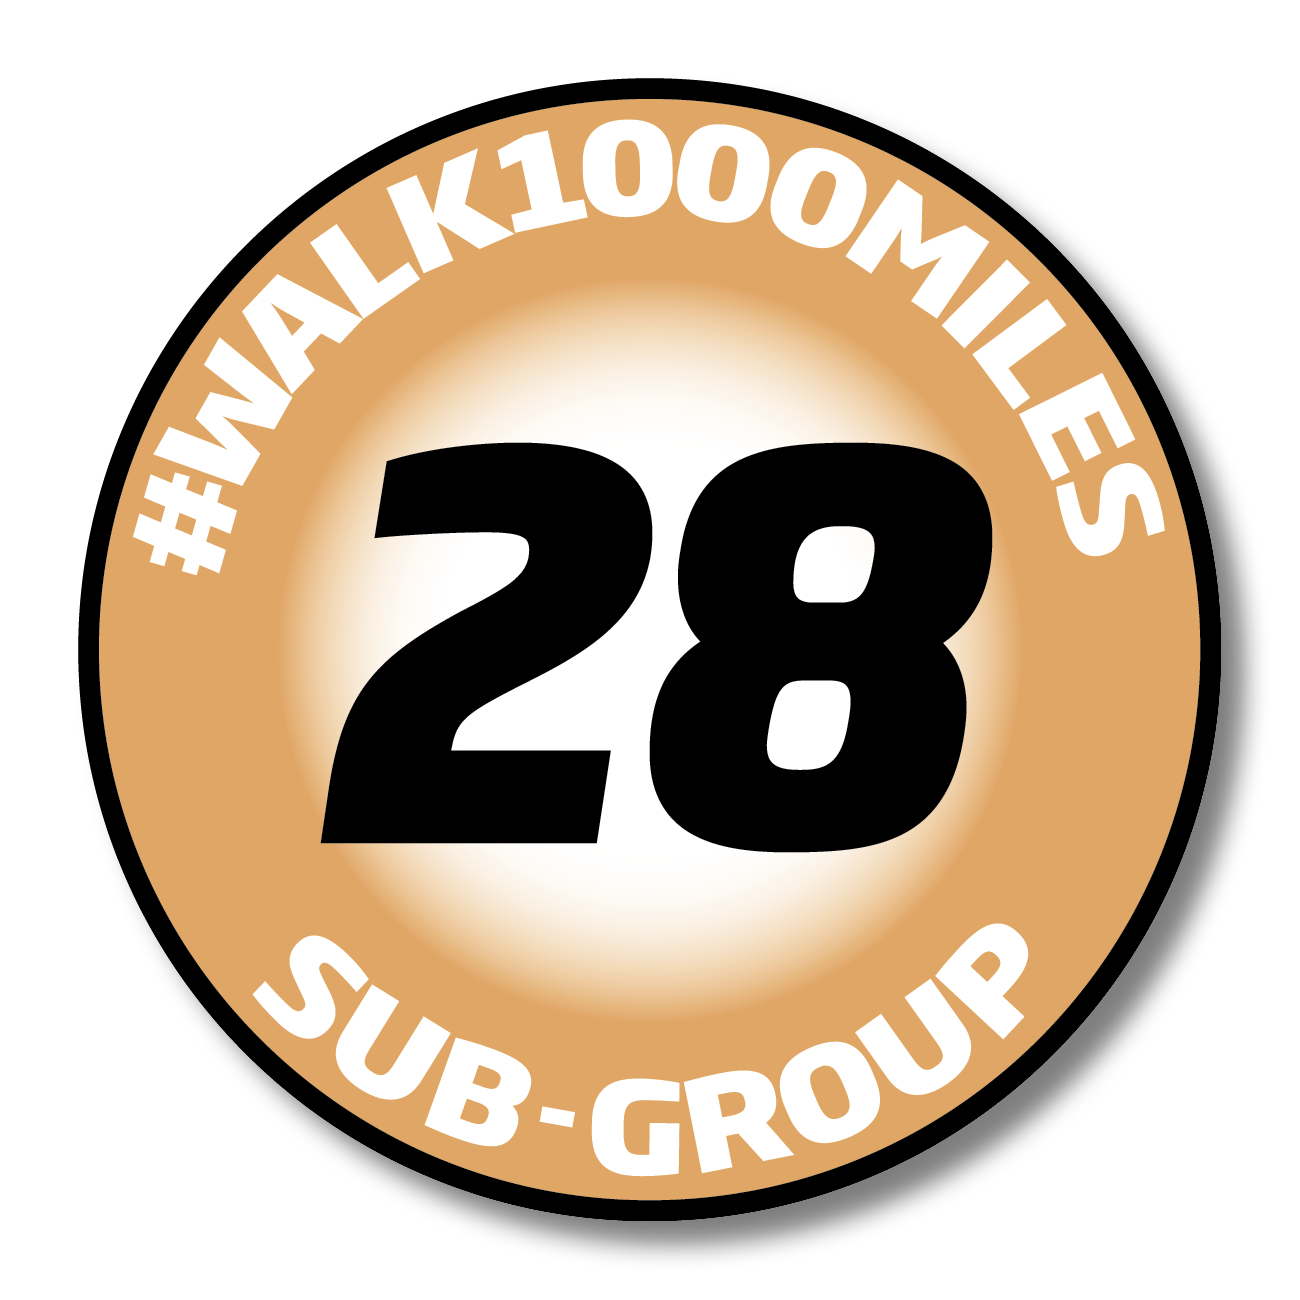 Look for this symbol and / or a number that corresponds with our list below to know the sub-group is approved.